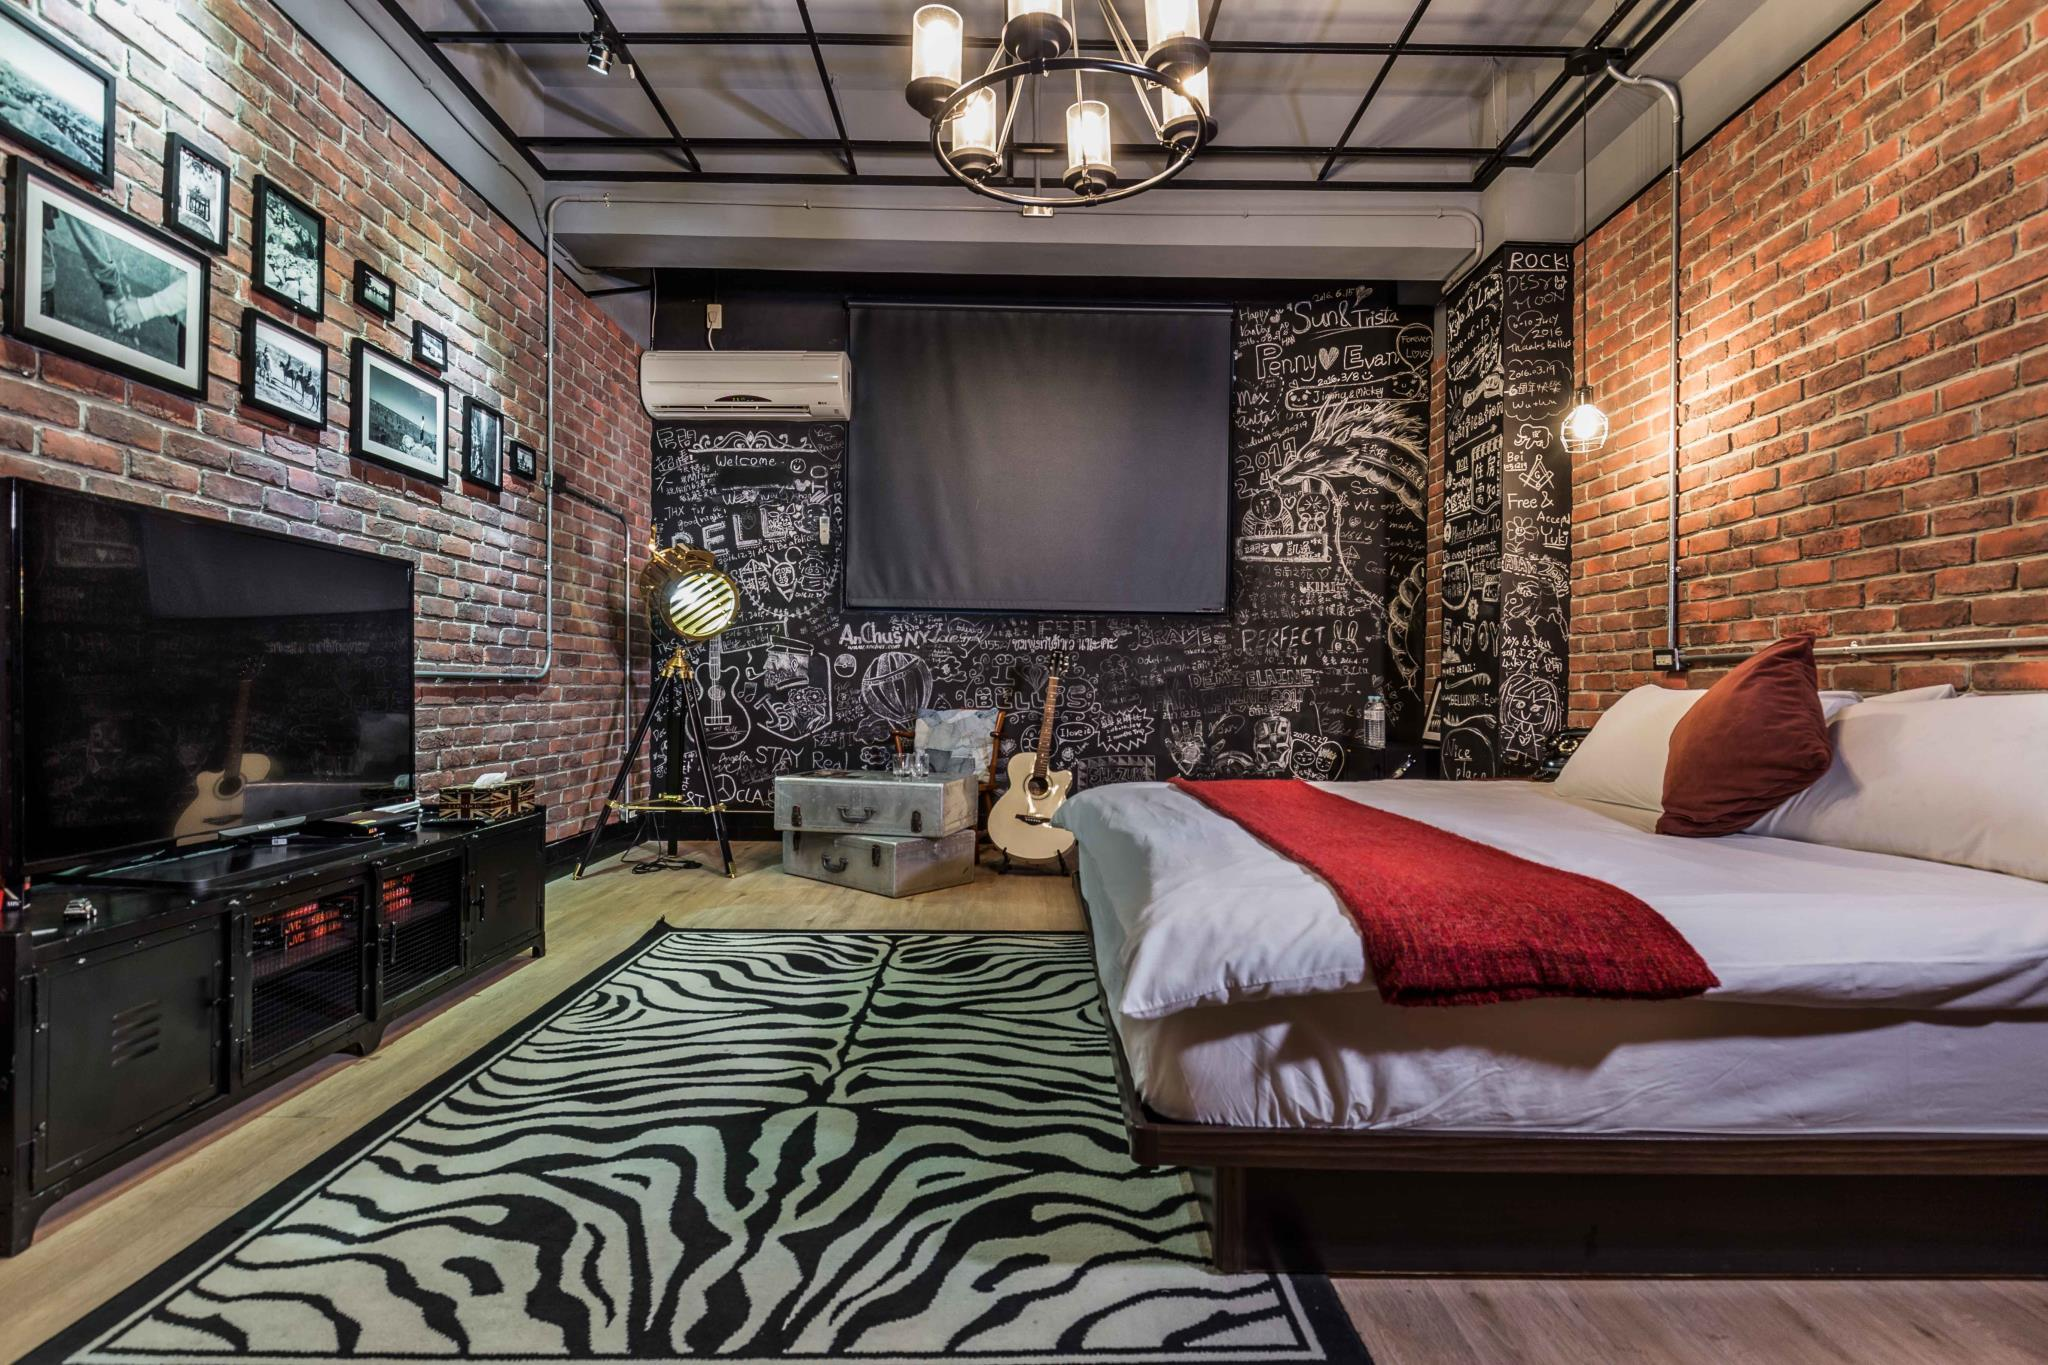 Loft style - Picture of Bellus Inn, North District